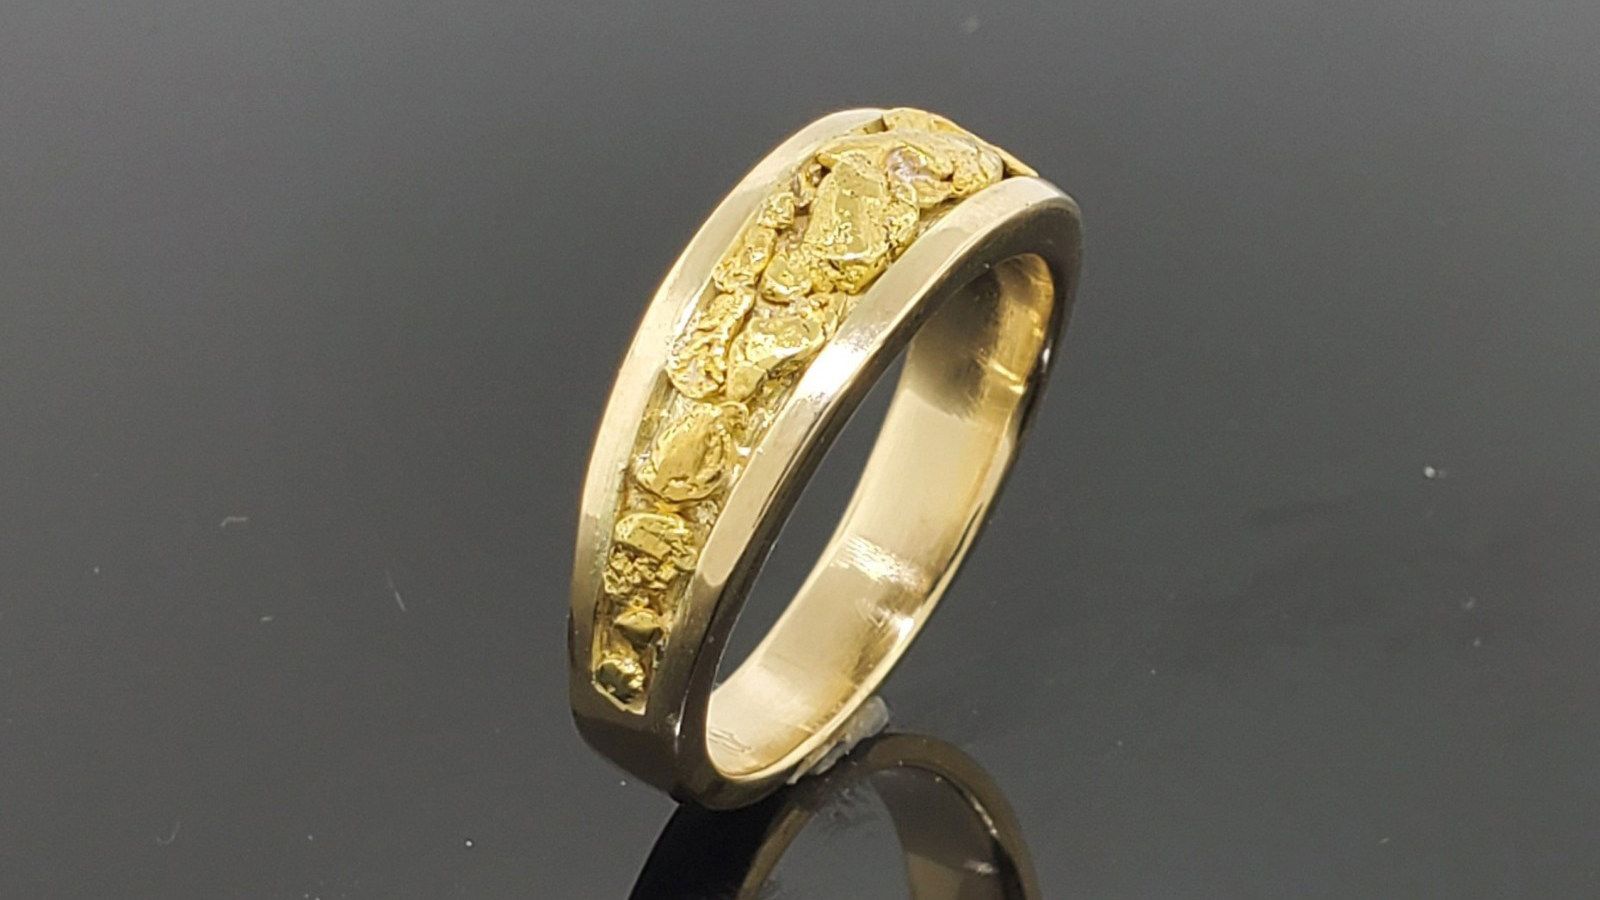 Custom 18K Gold Ring with Natural Pure Gold Nuggets; 18K Gold Alloy Made from Gold Nuggets Pictured Above